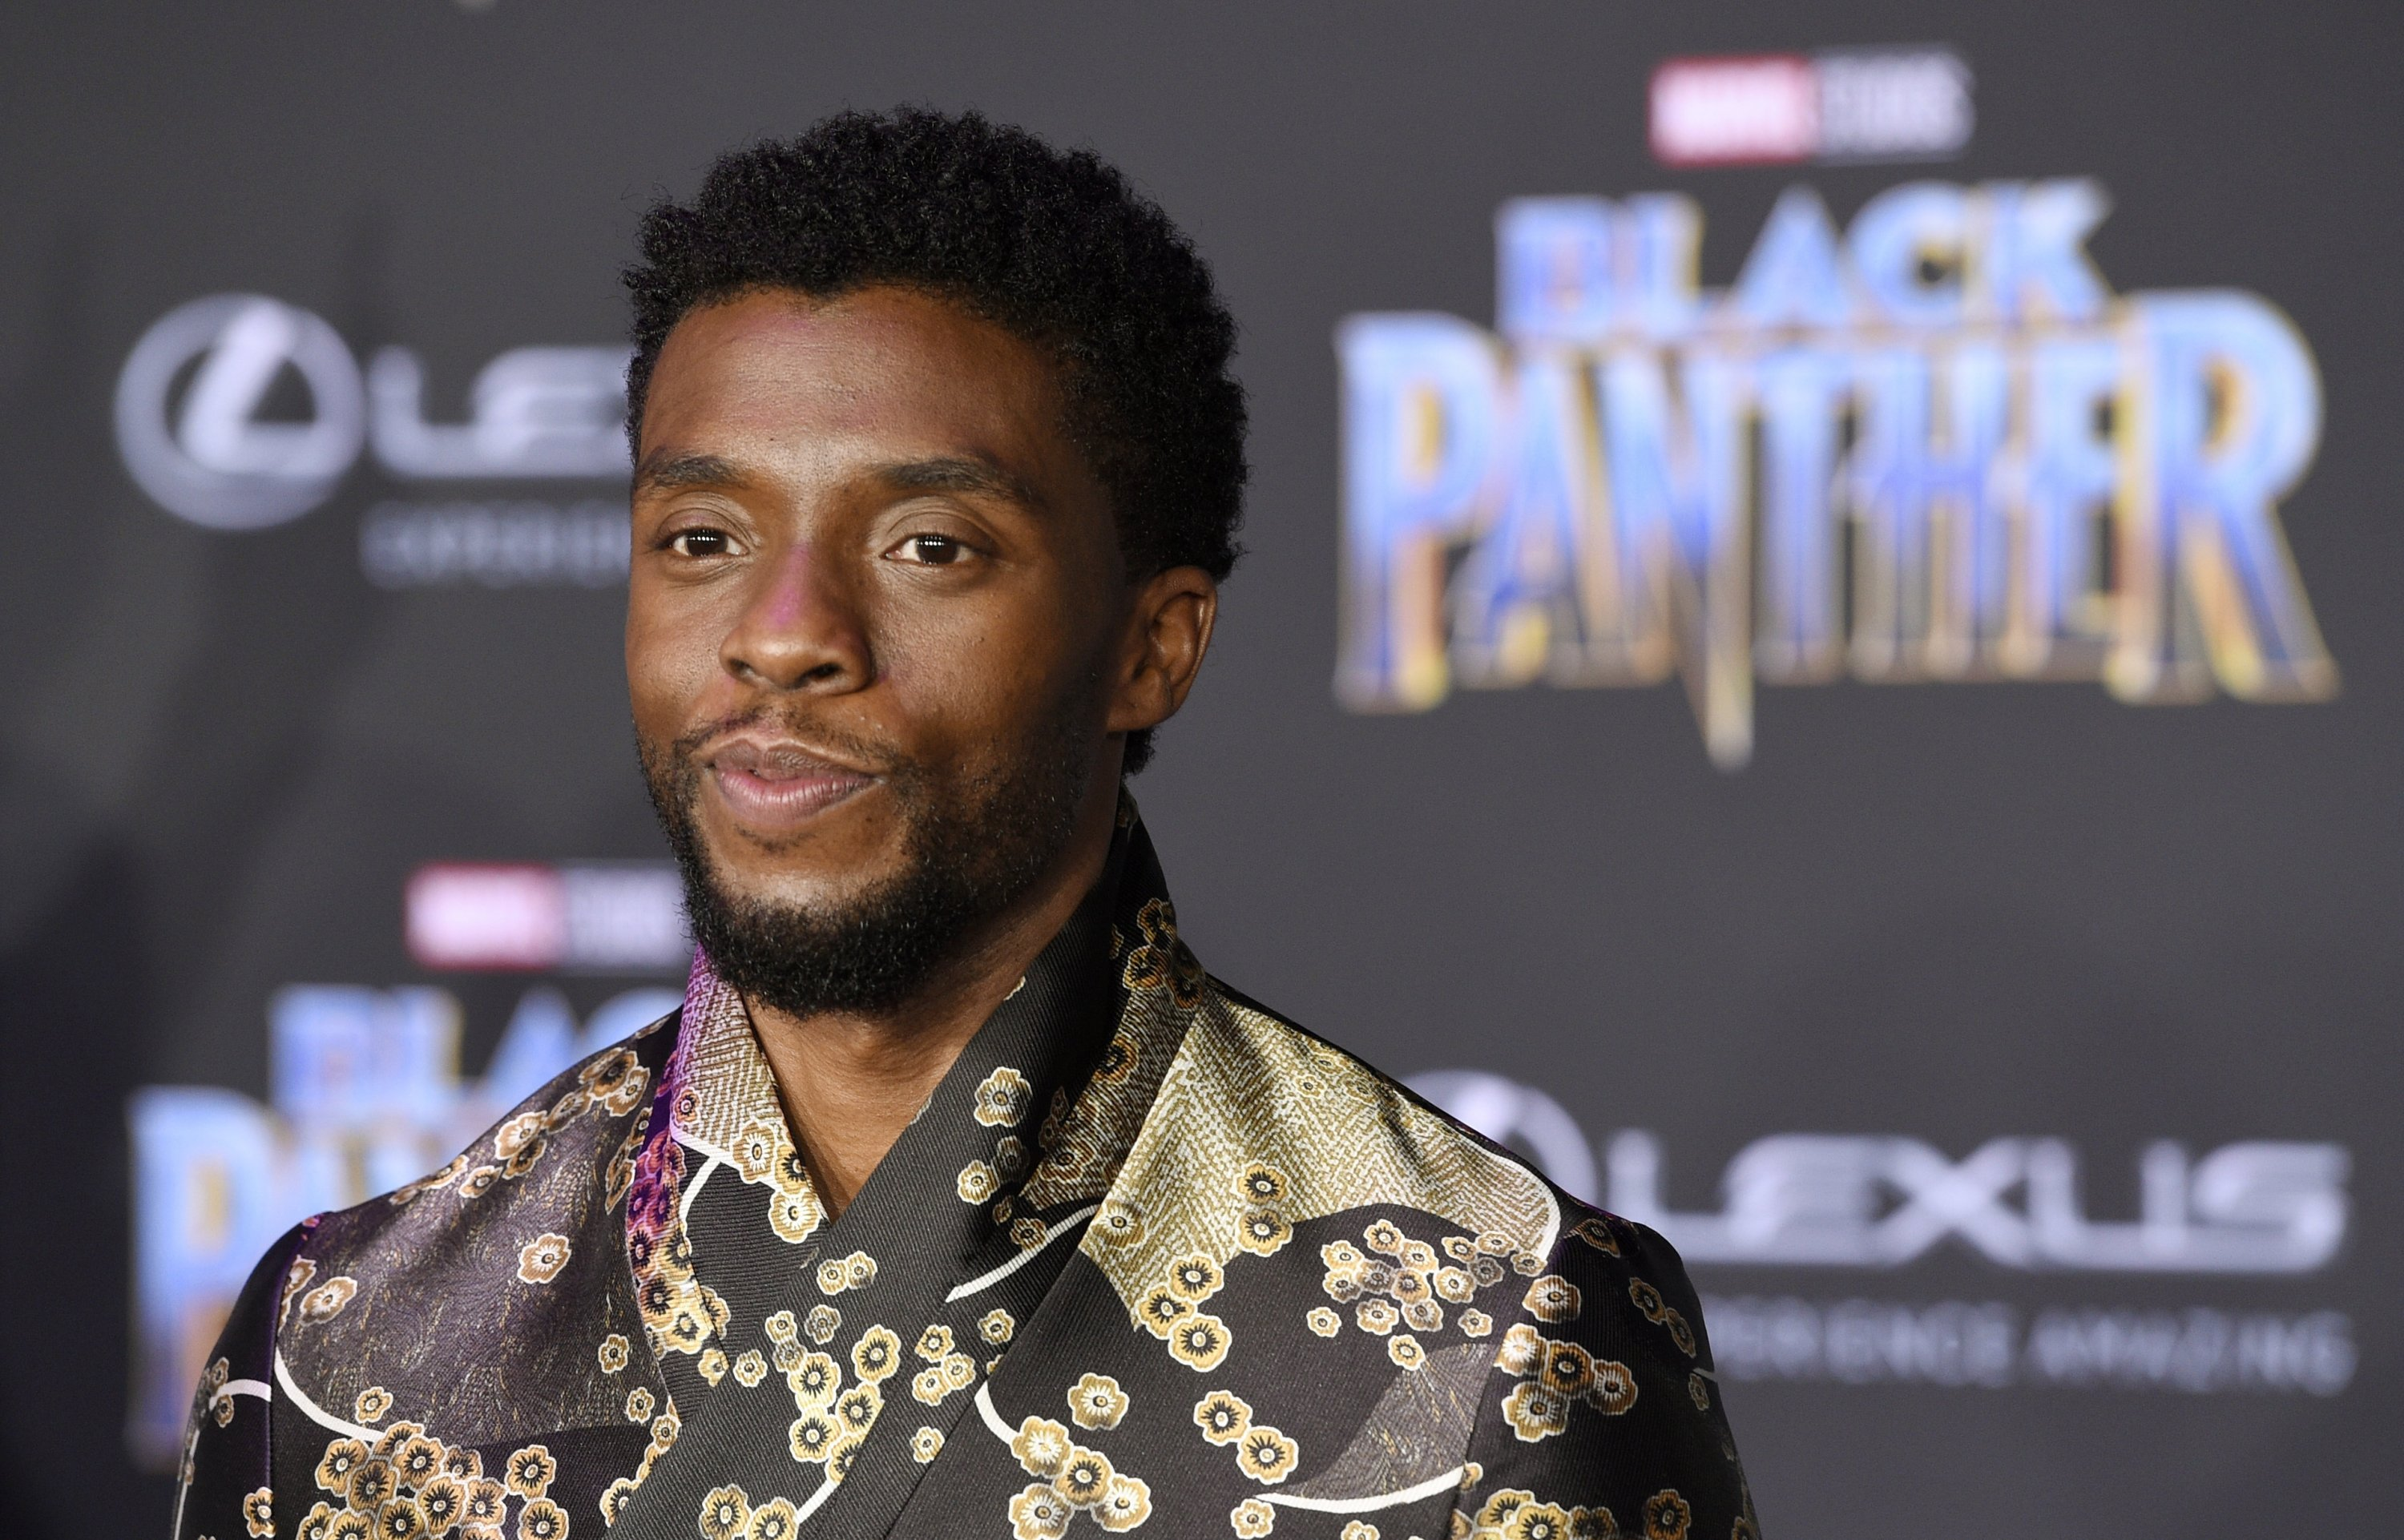 'Black Panther' star Chadwick Boseman died of colon cancer on Aug. 28, 2020 in Los Angeles. (Photo by Chris Pizzello/Invision/AP)